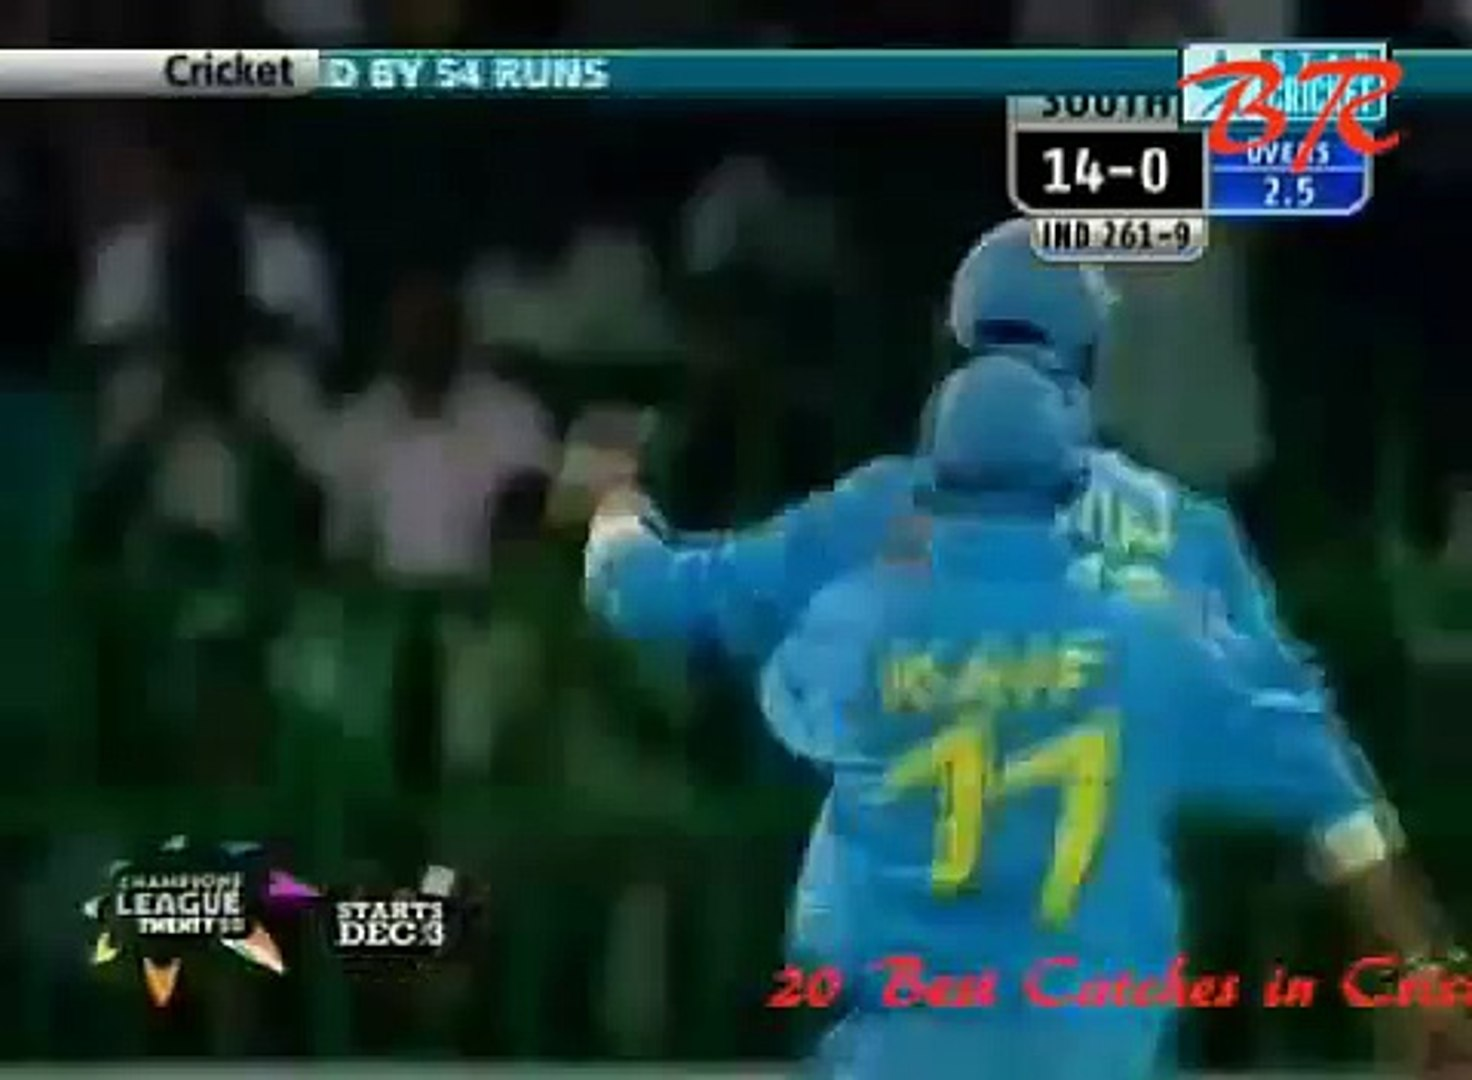 Top 10 Best Catches in Cricket History,Best Catch Video